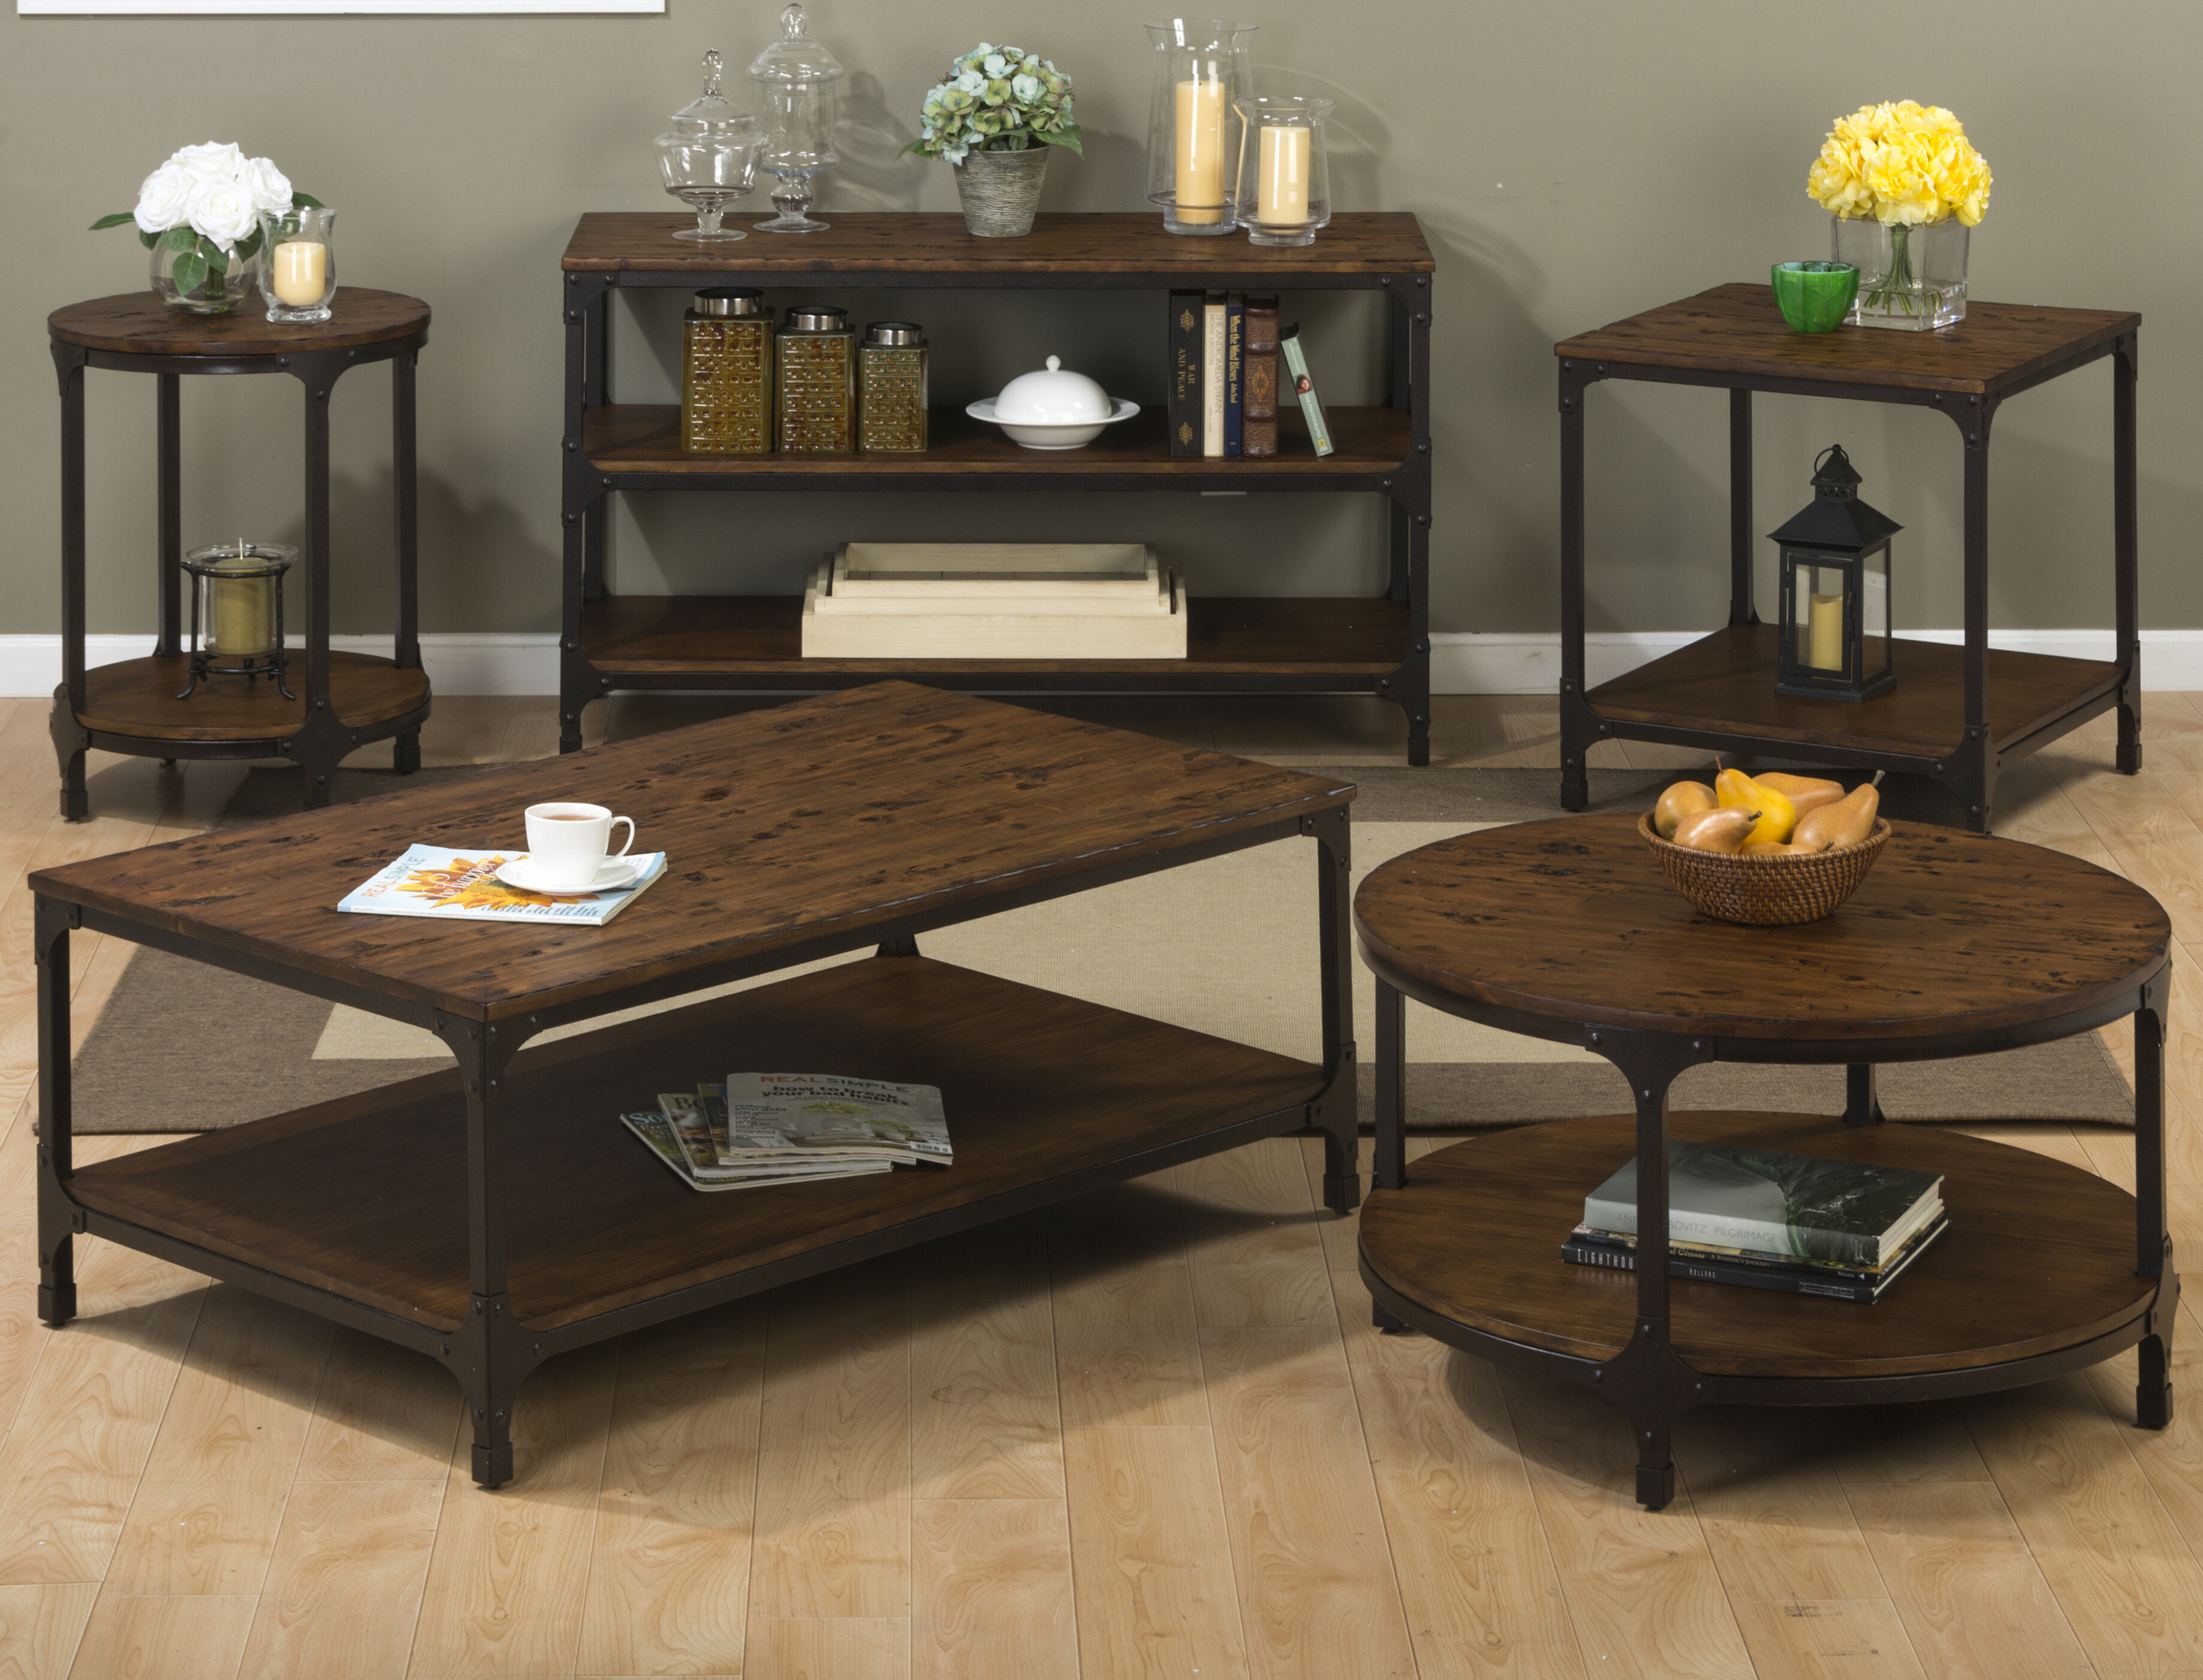 boy lastman living by coffee table design room s piece ingel bad oc end ashley crop series sets signature furniture and